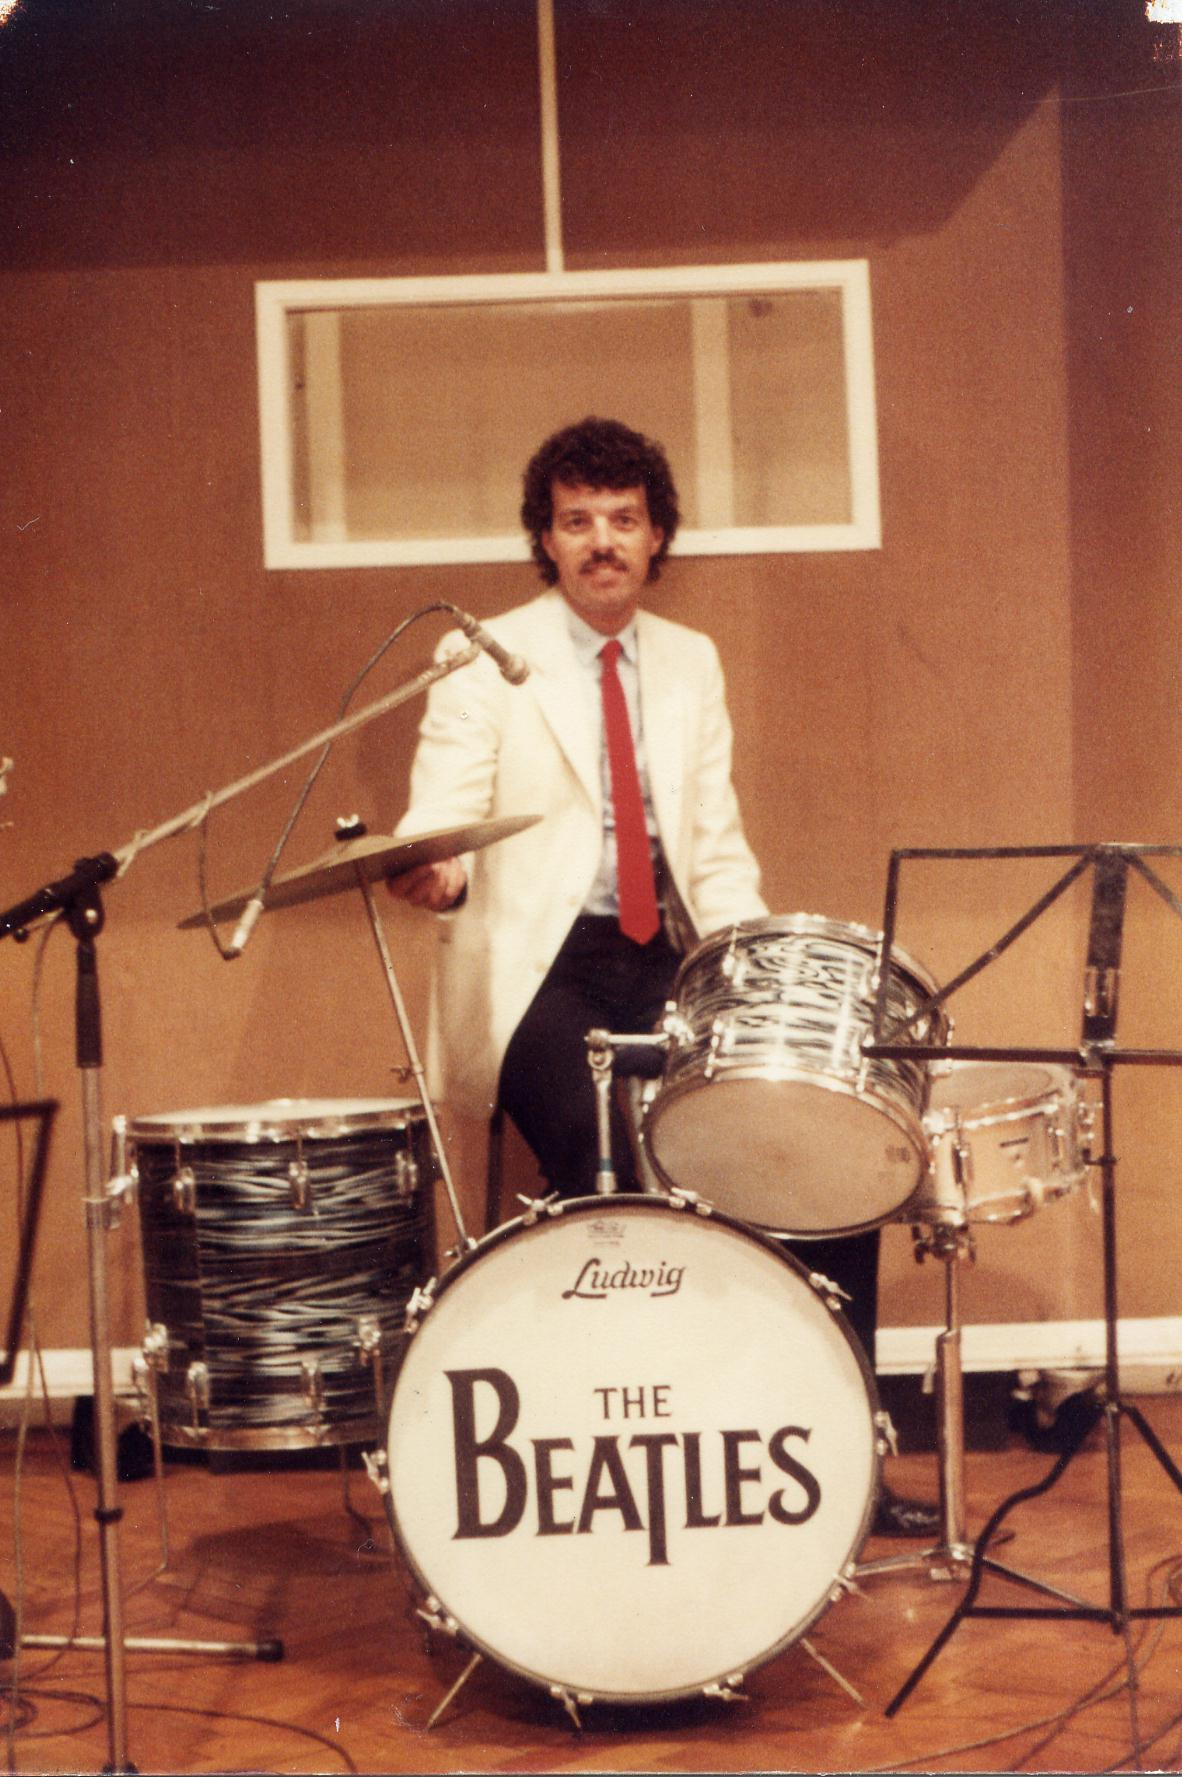 Andy Owen on Ringo's drum kit.